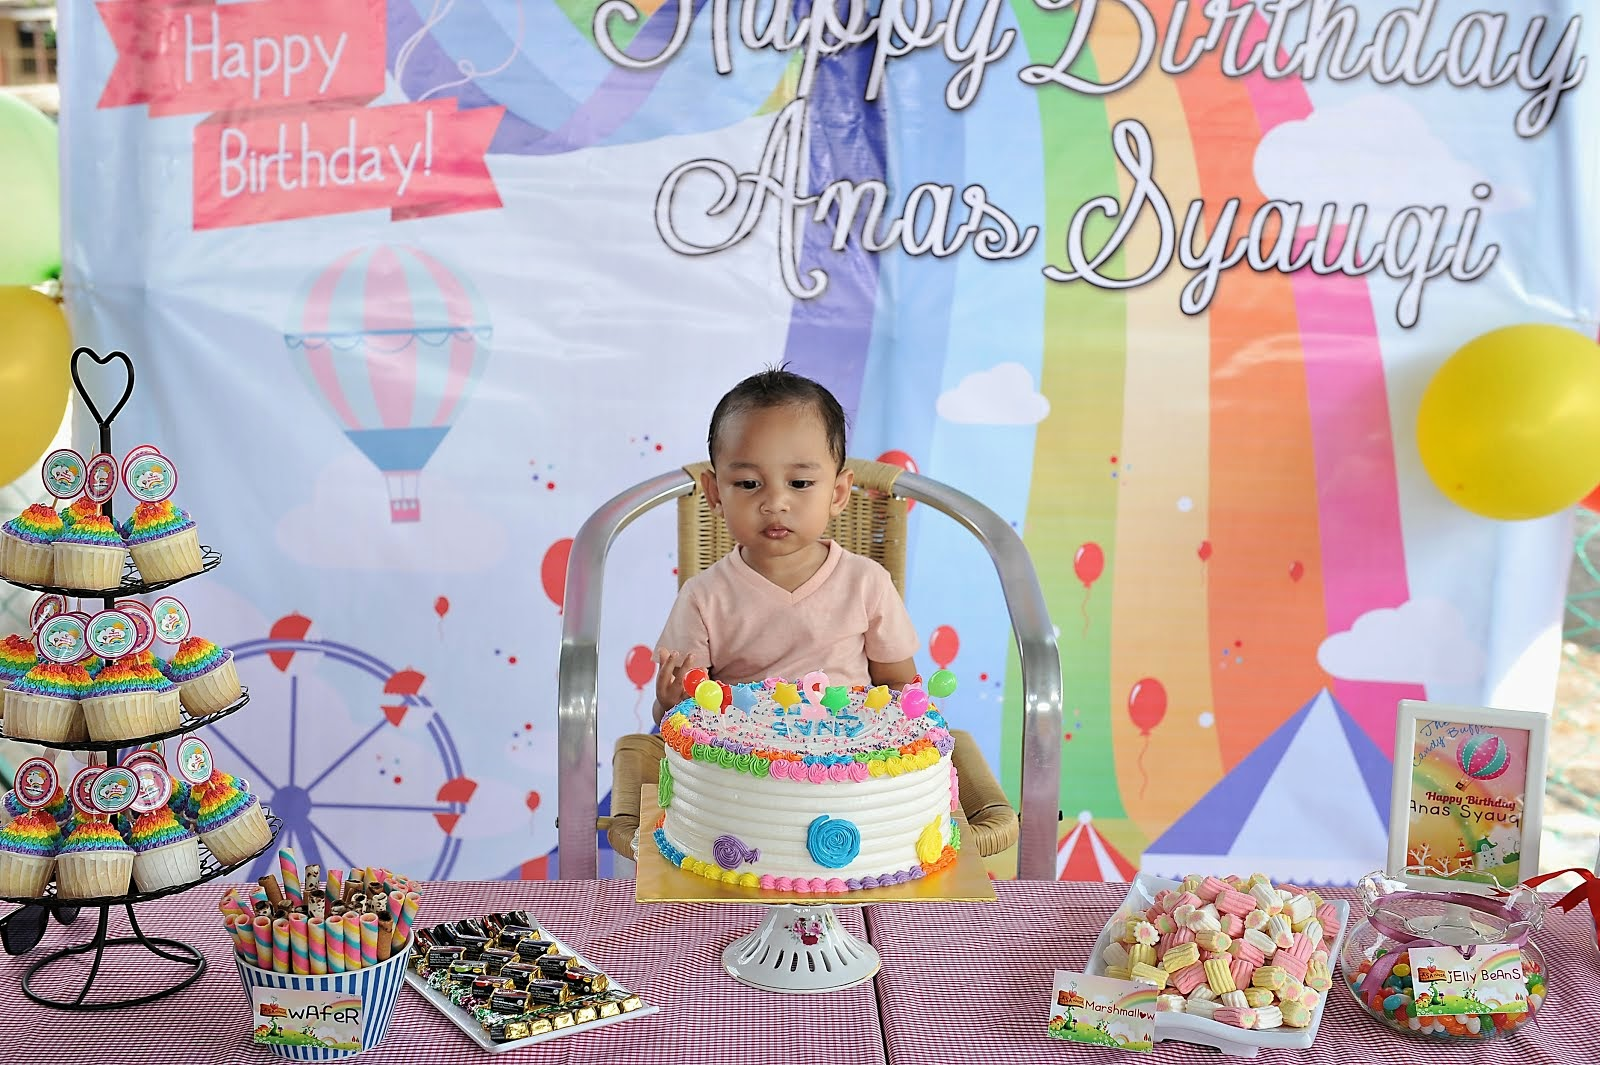 ♥ Anas Syauqi 2nd Birthday ♥